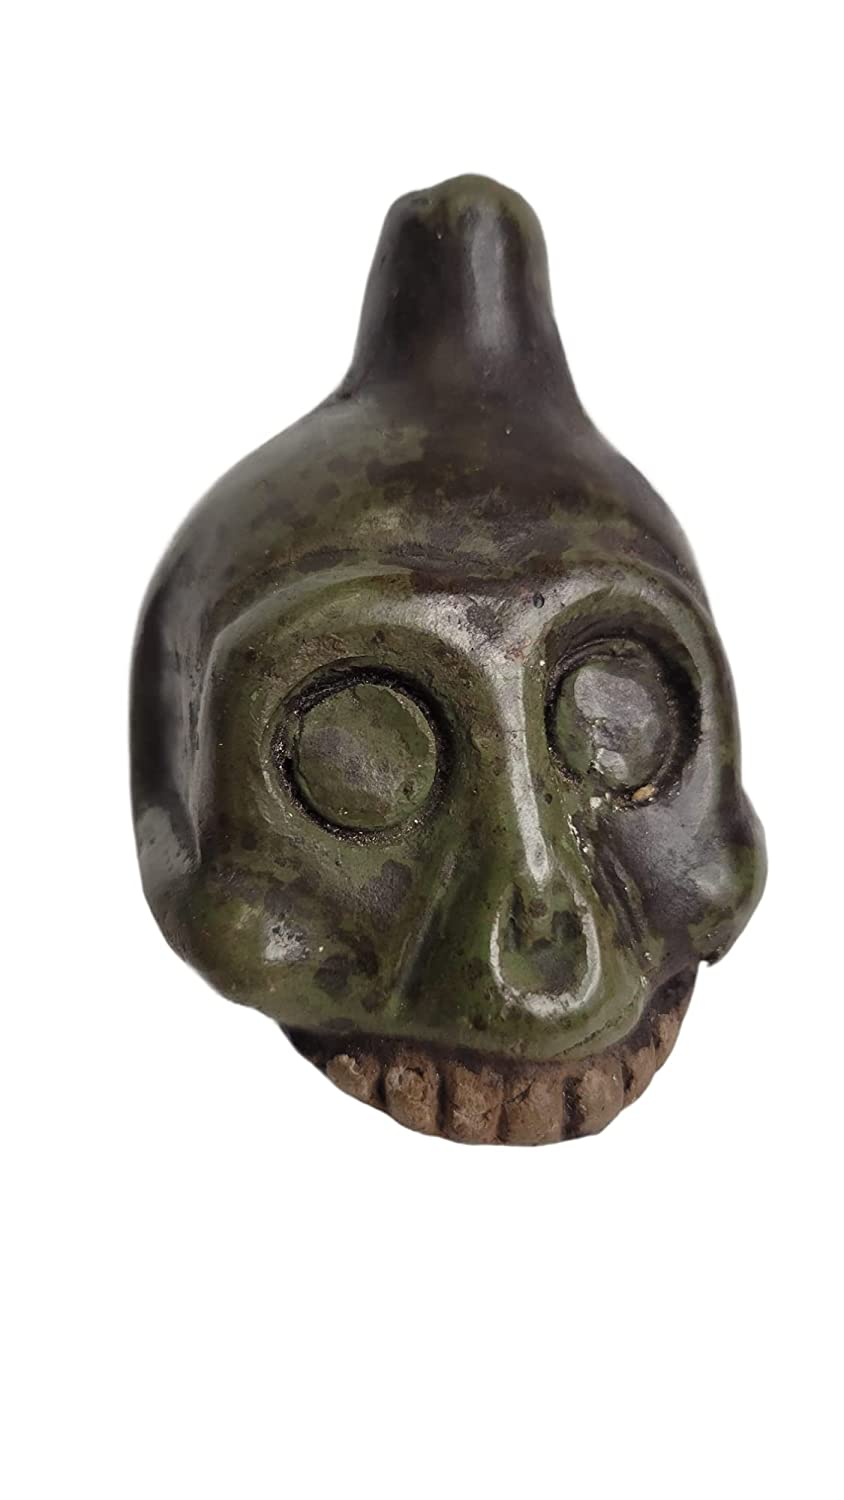 Complete Free Shipping Half discount Skull Death Whistle Small Clay Size Loud Aztec Handmade